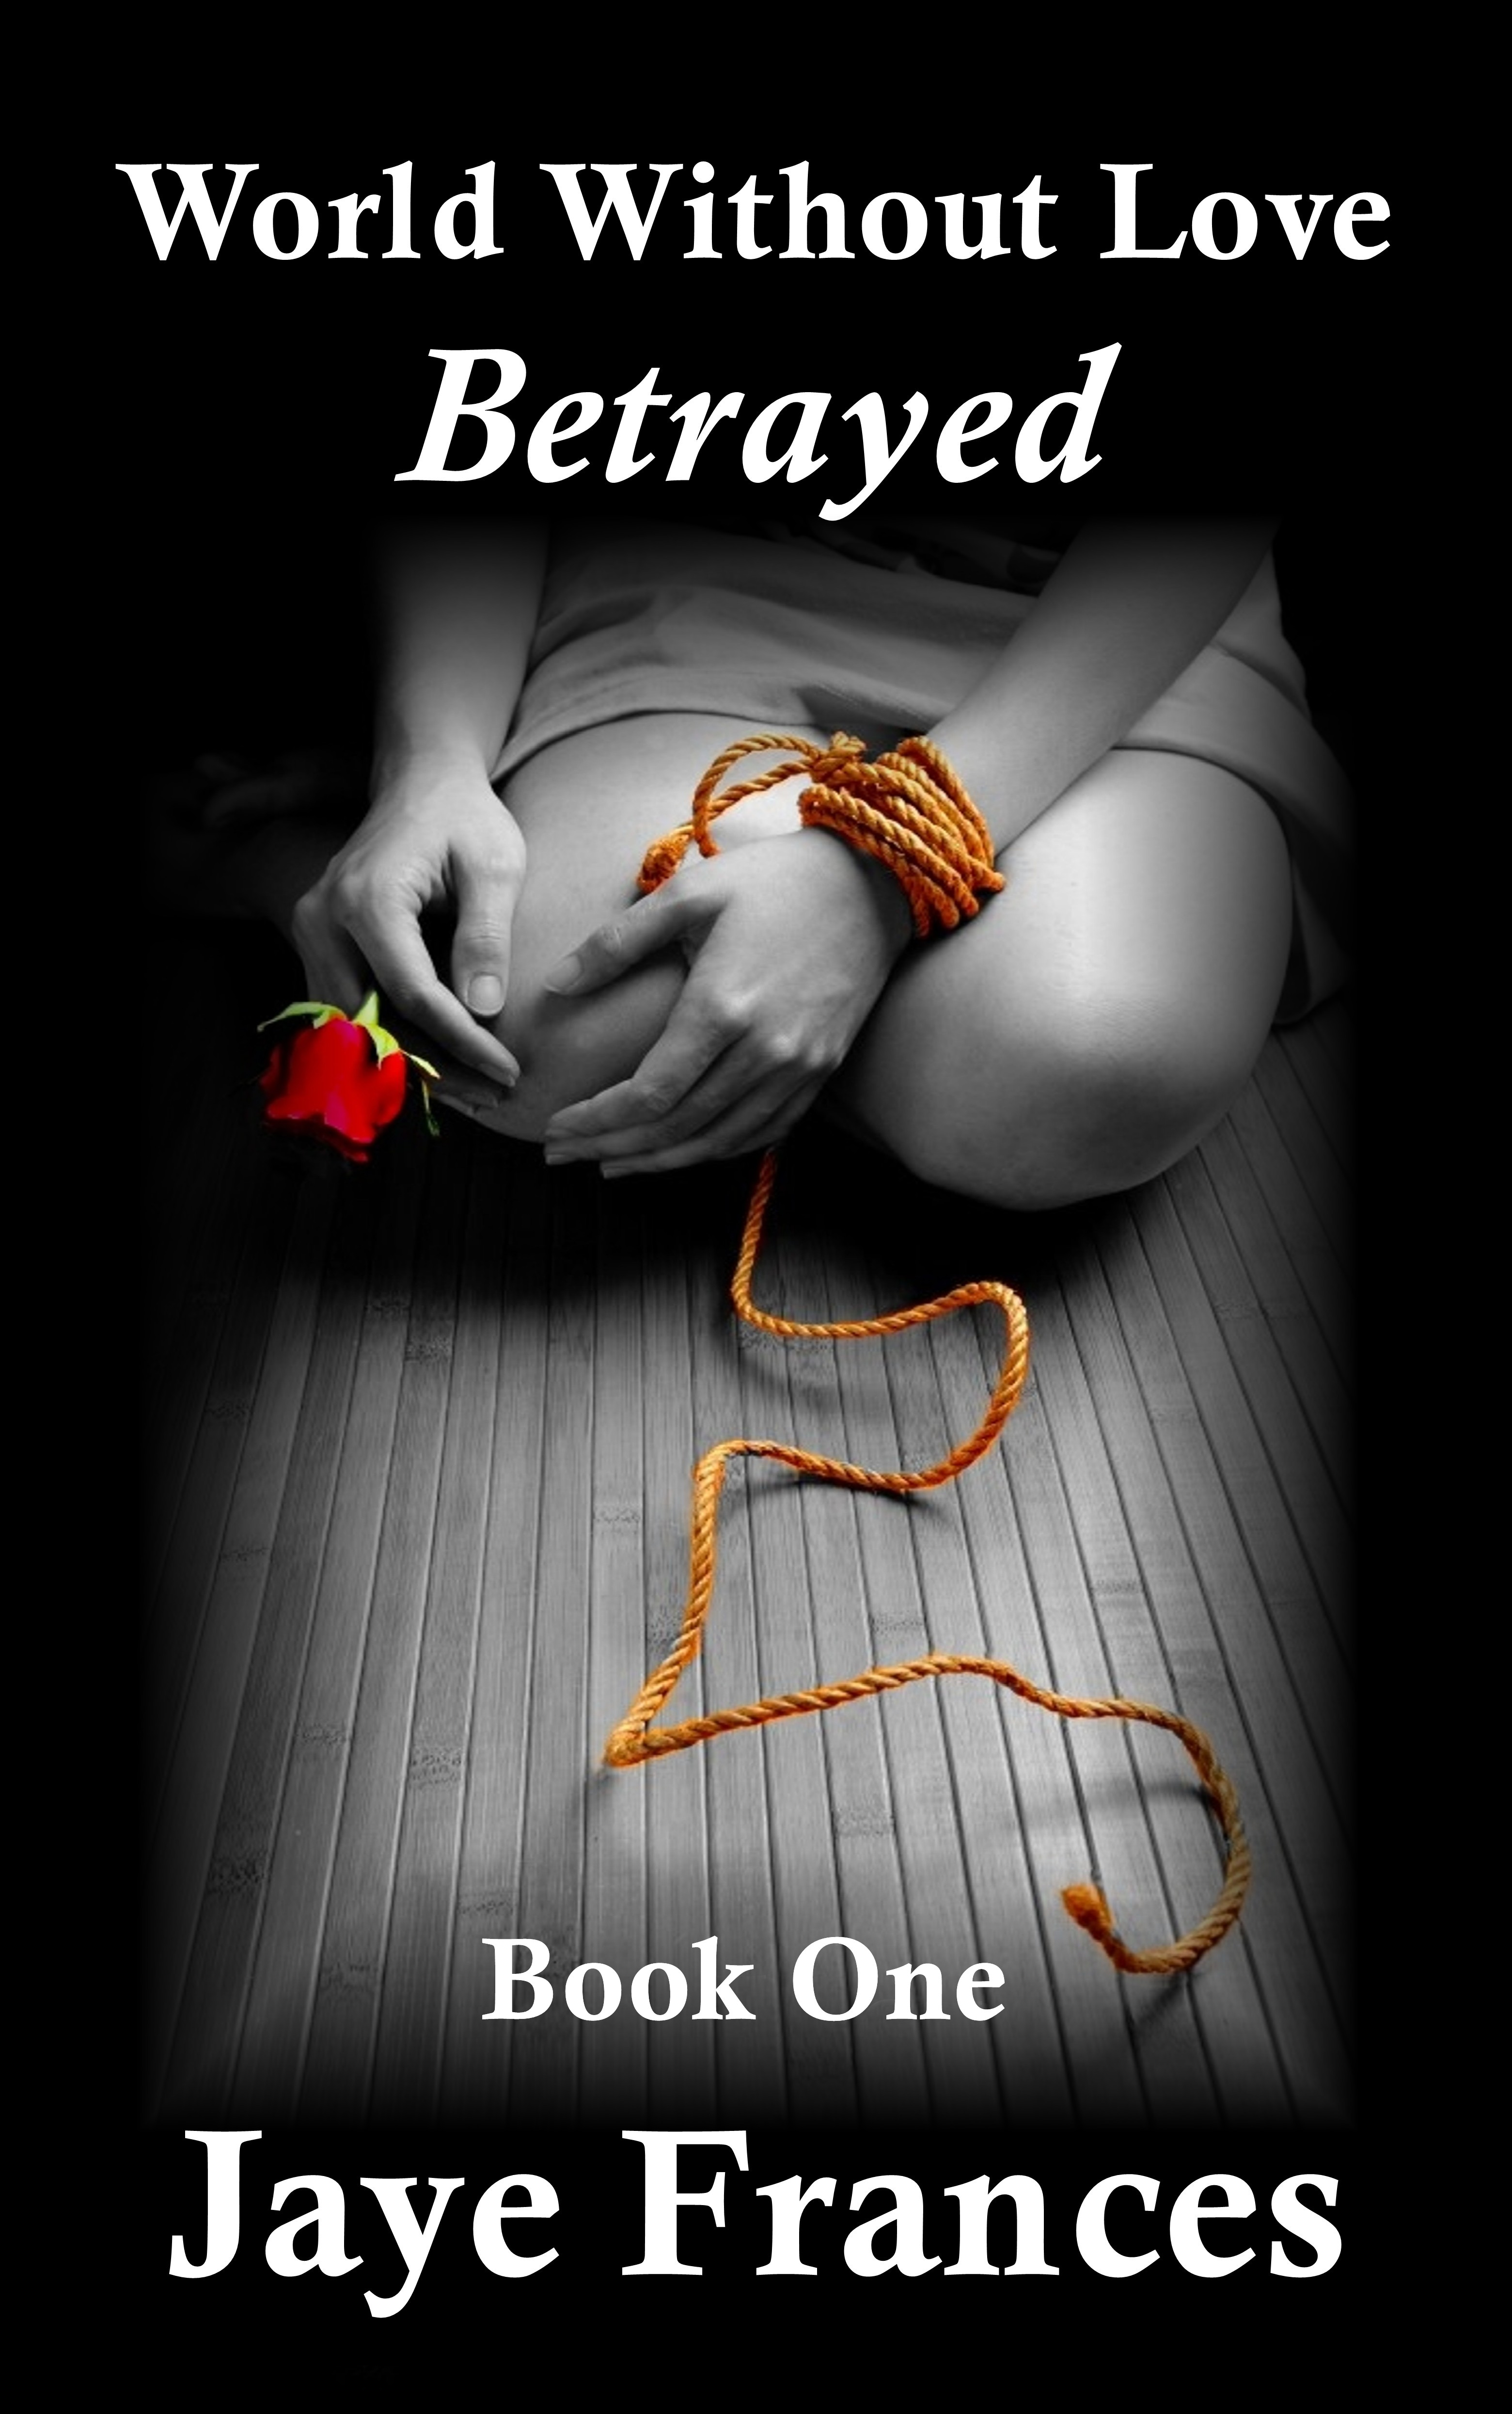 Betrayed on Sale for $0.99!